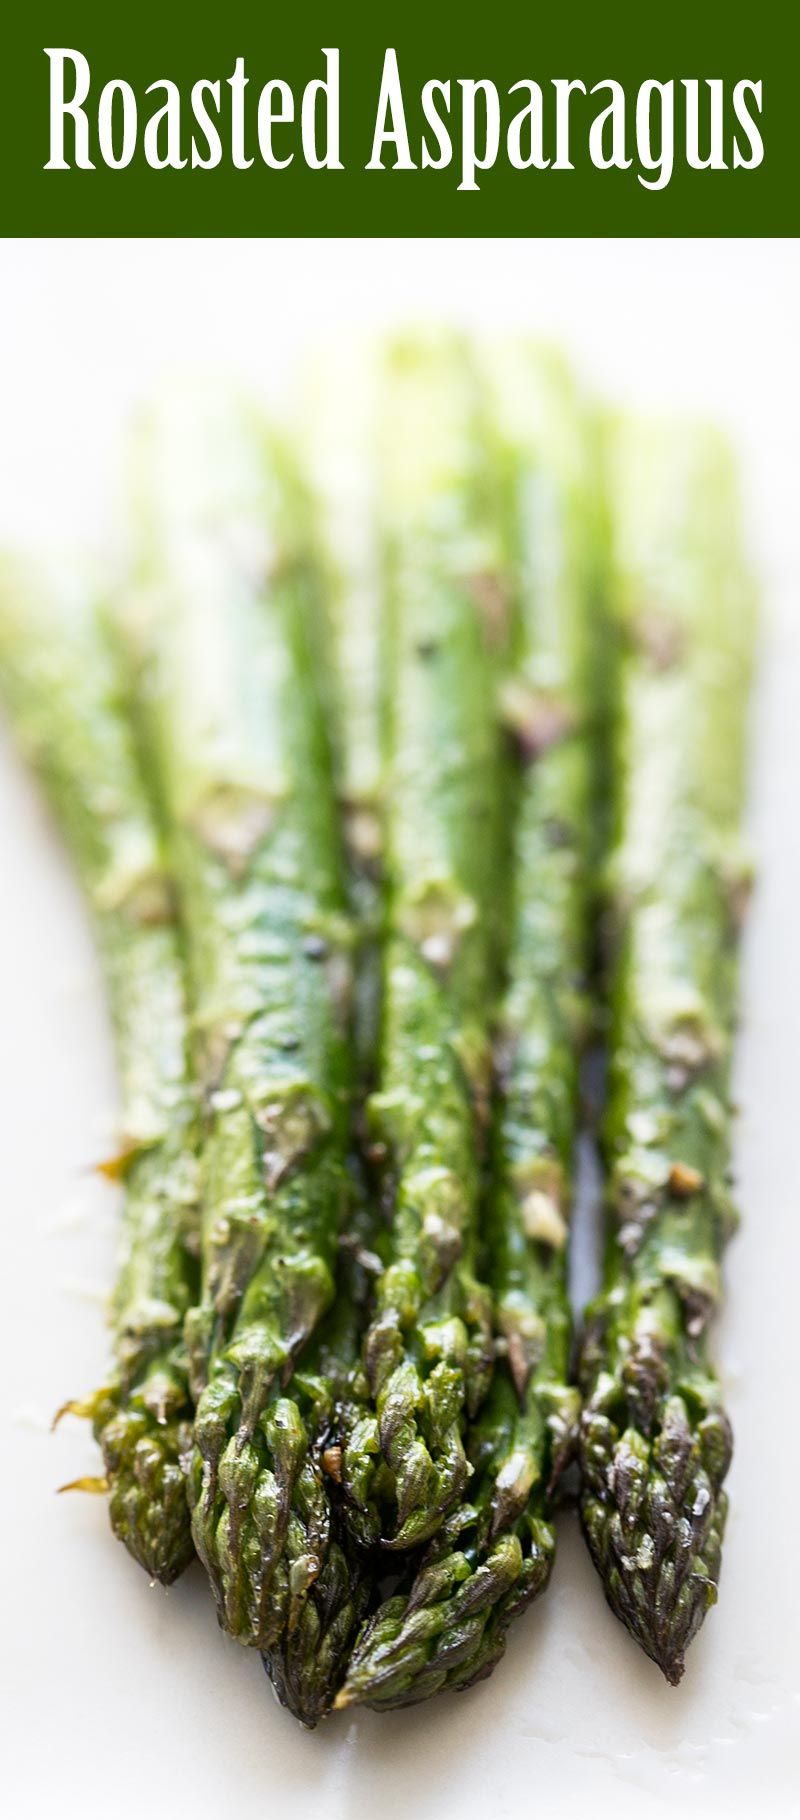 Roasted Asparagus Quick and easy roasted asparagus recipe! with thick asparagus spears, olive oil, garlic, salt, pepper, and a little lemon juice.